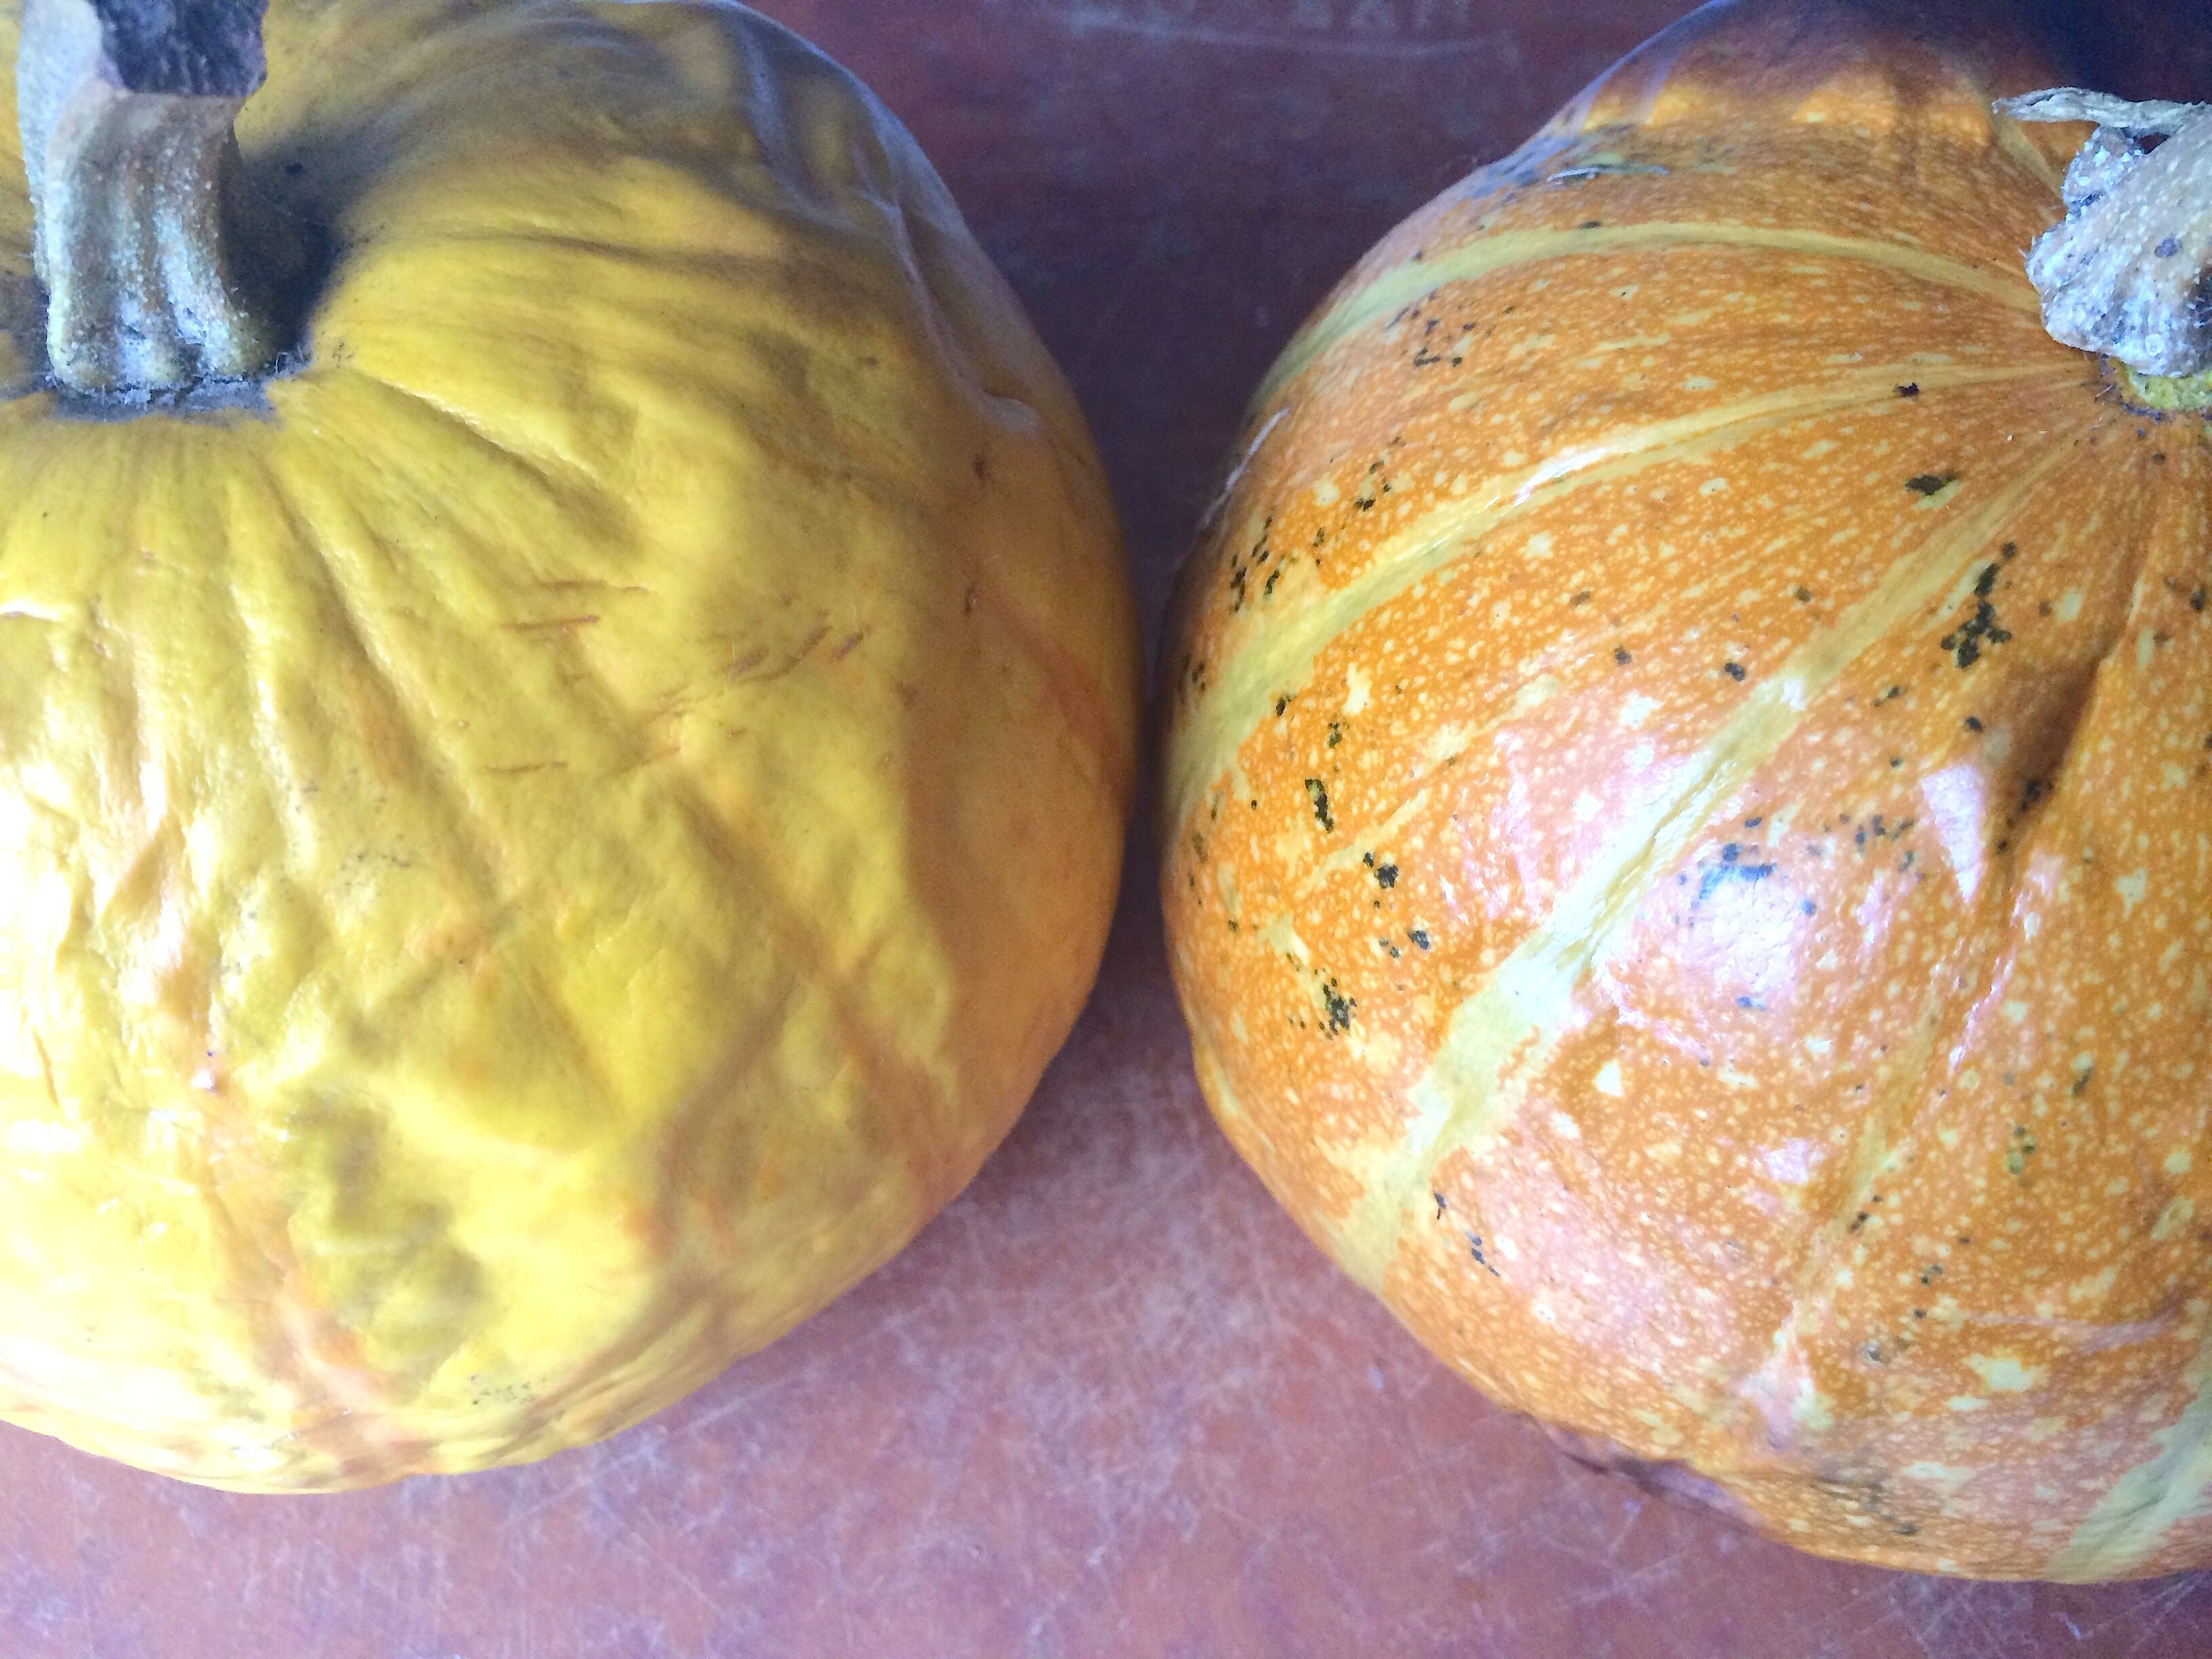 Pie pumpkins from the market, fresh out of the oven after roasting (these from  Lonely Mountain Farm ).